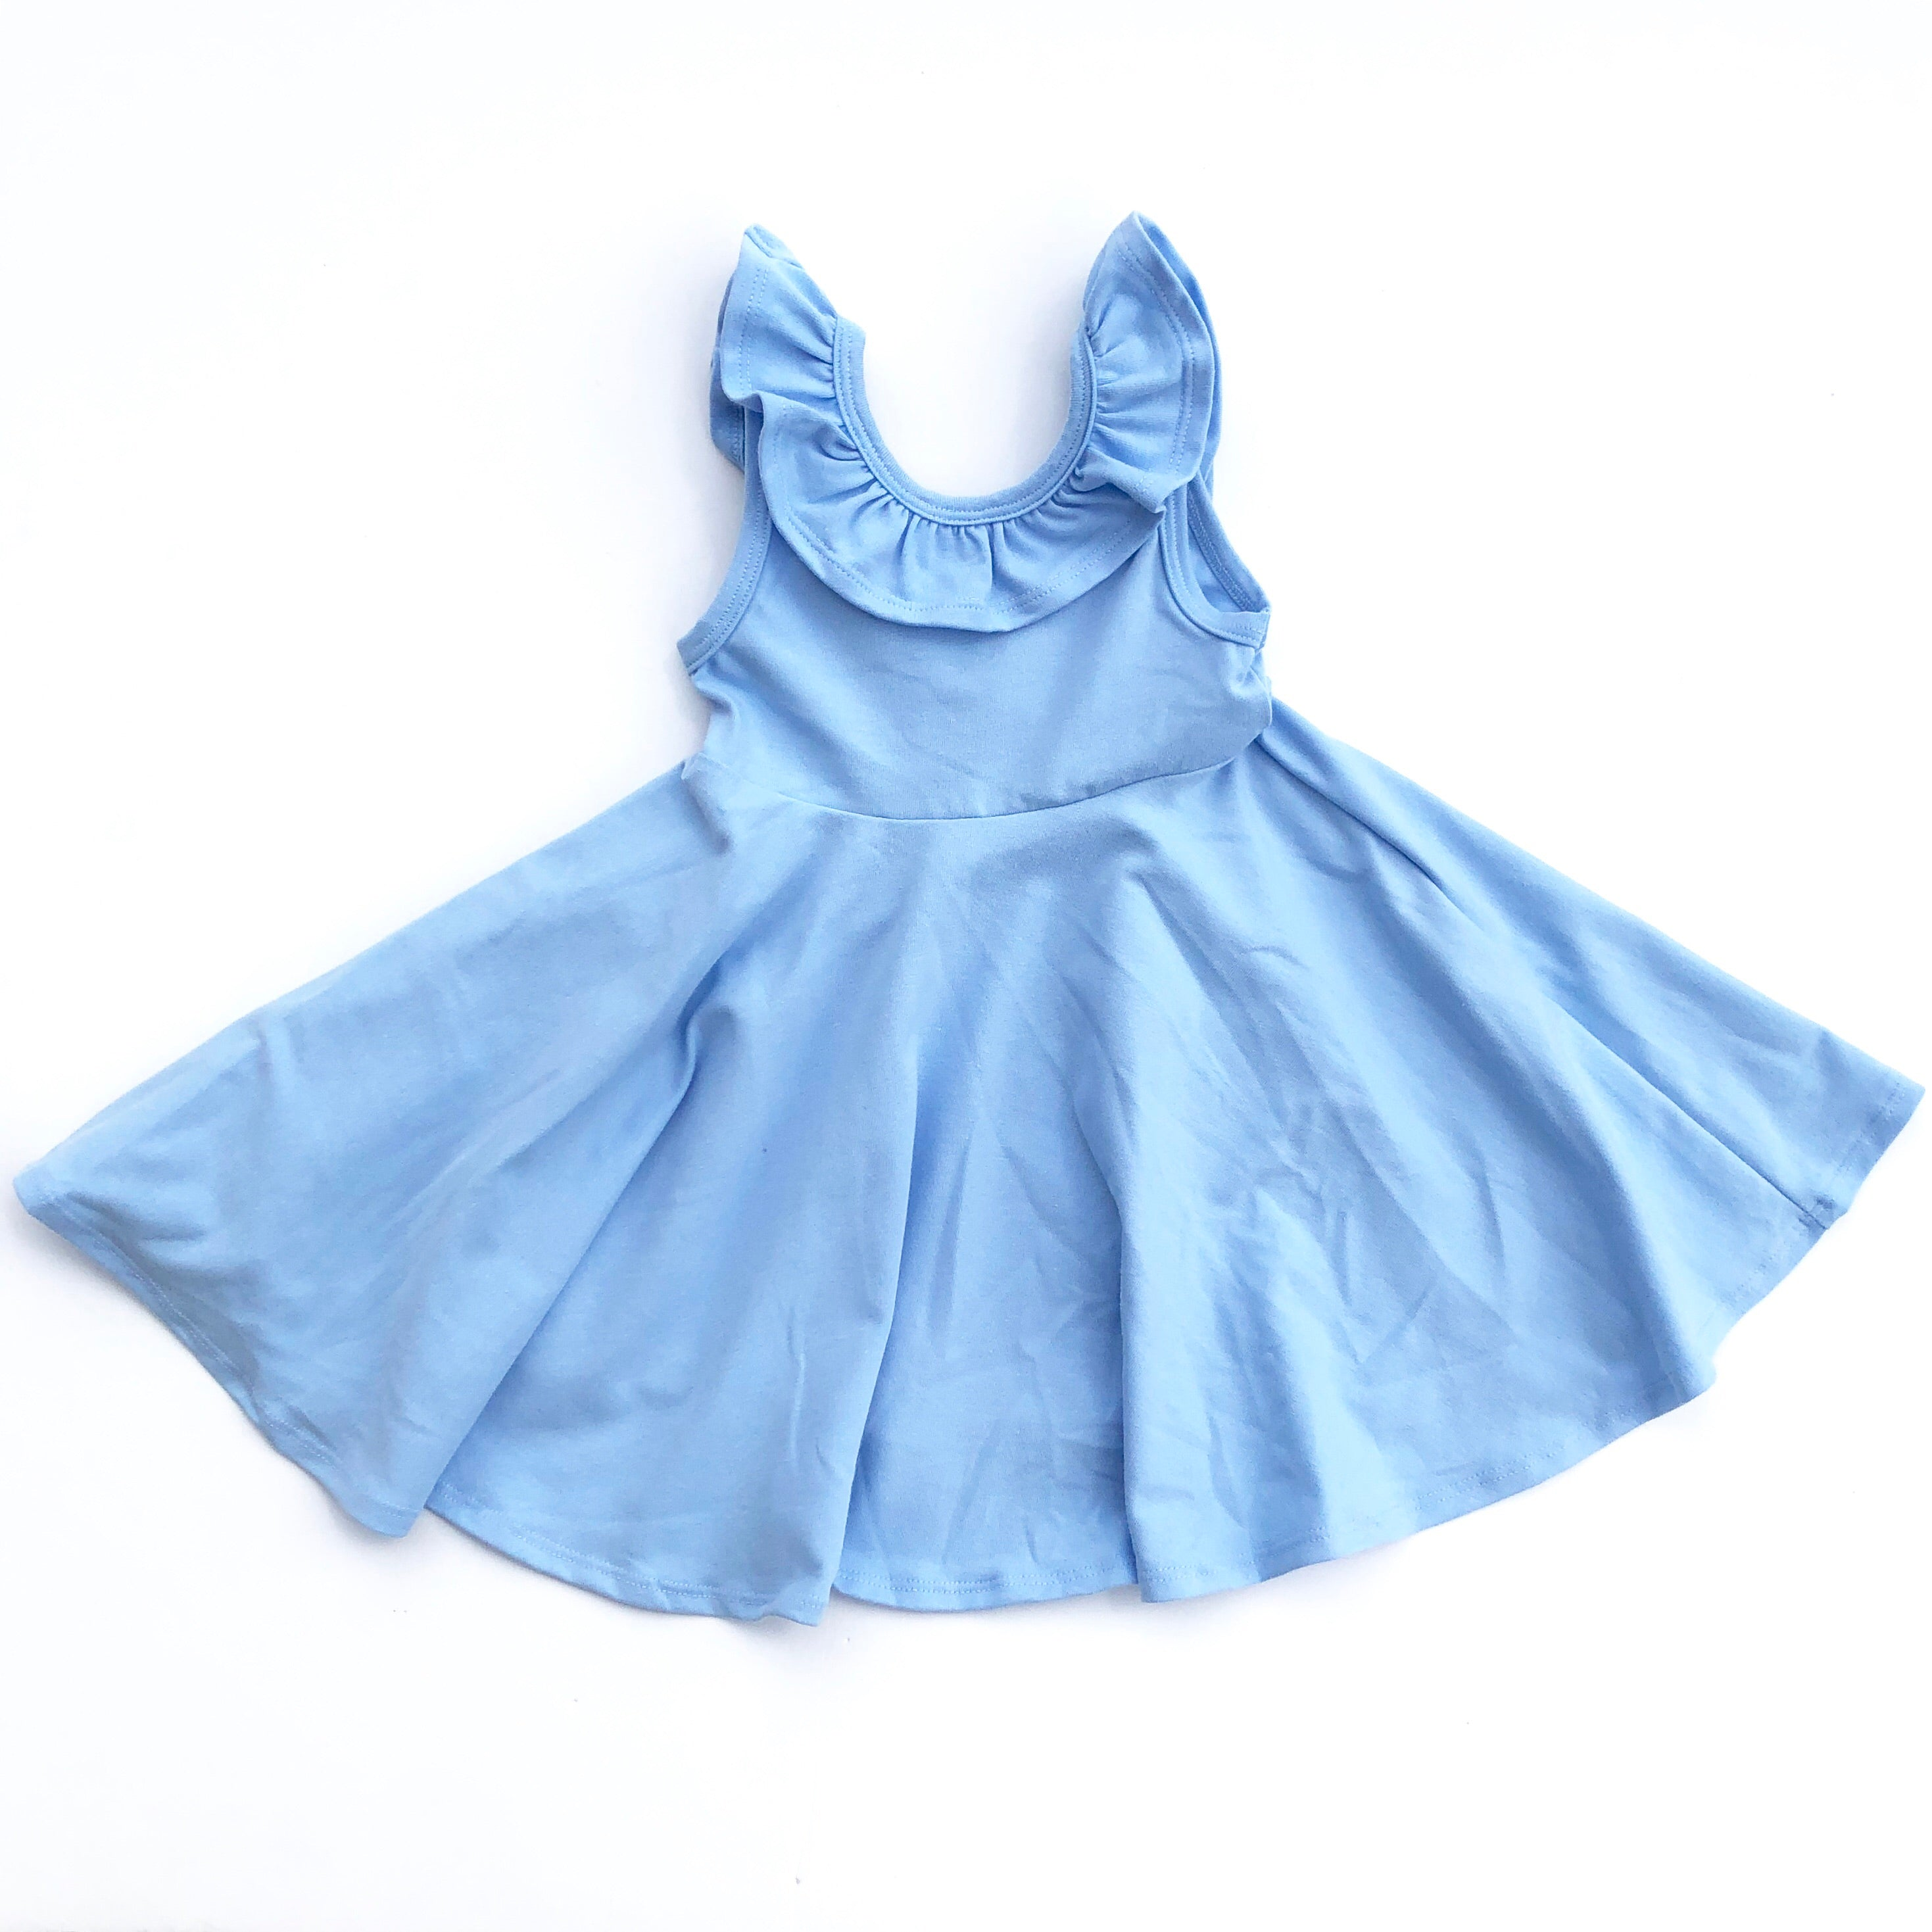 Powder Blue Ruffle Collar Tank Style Twirl Dress